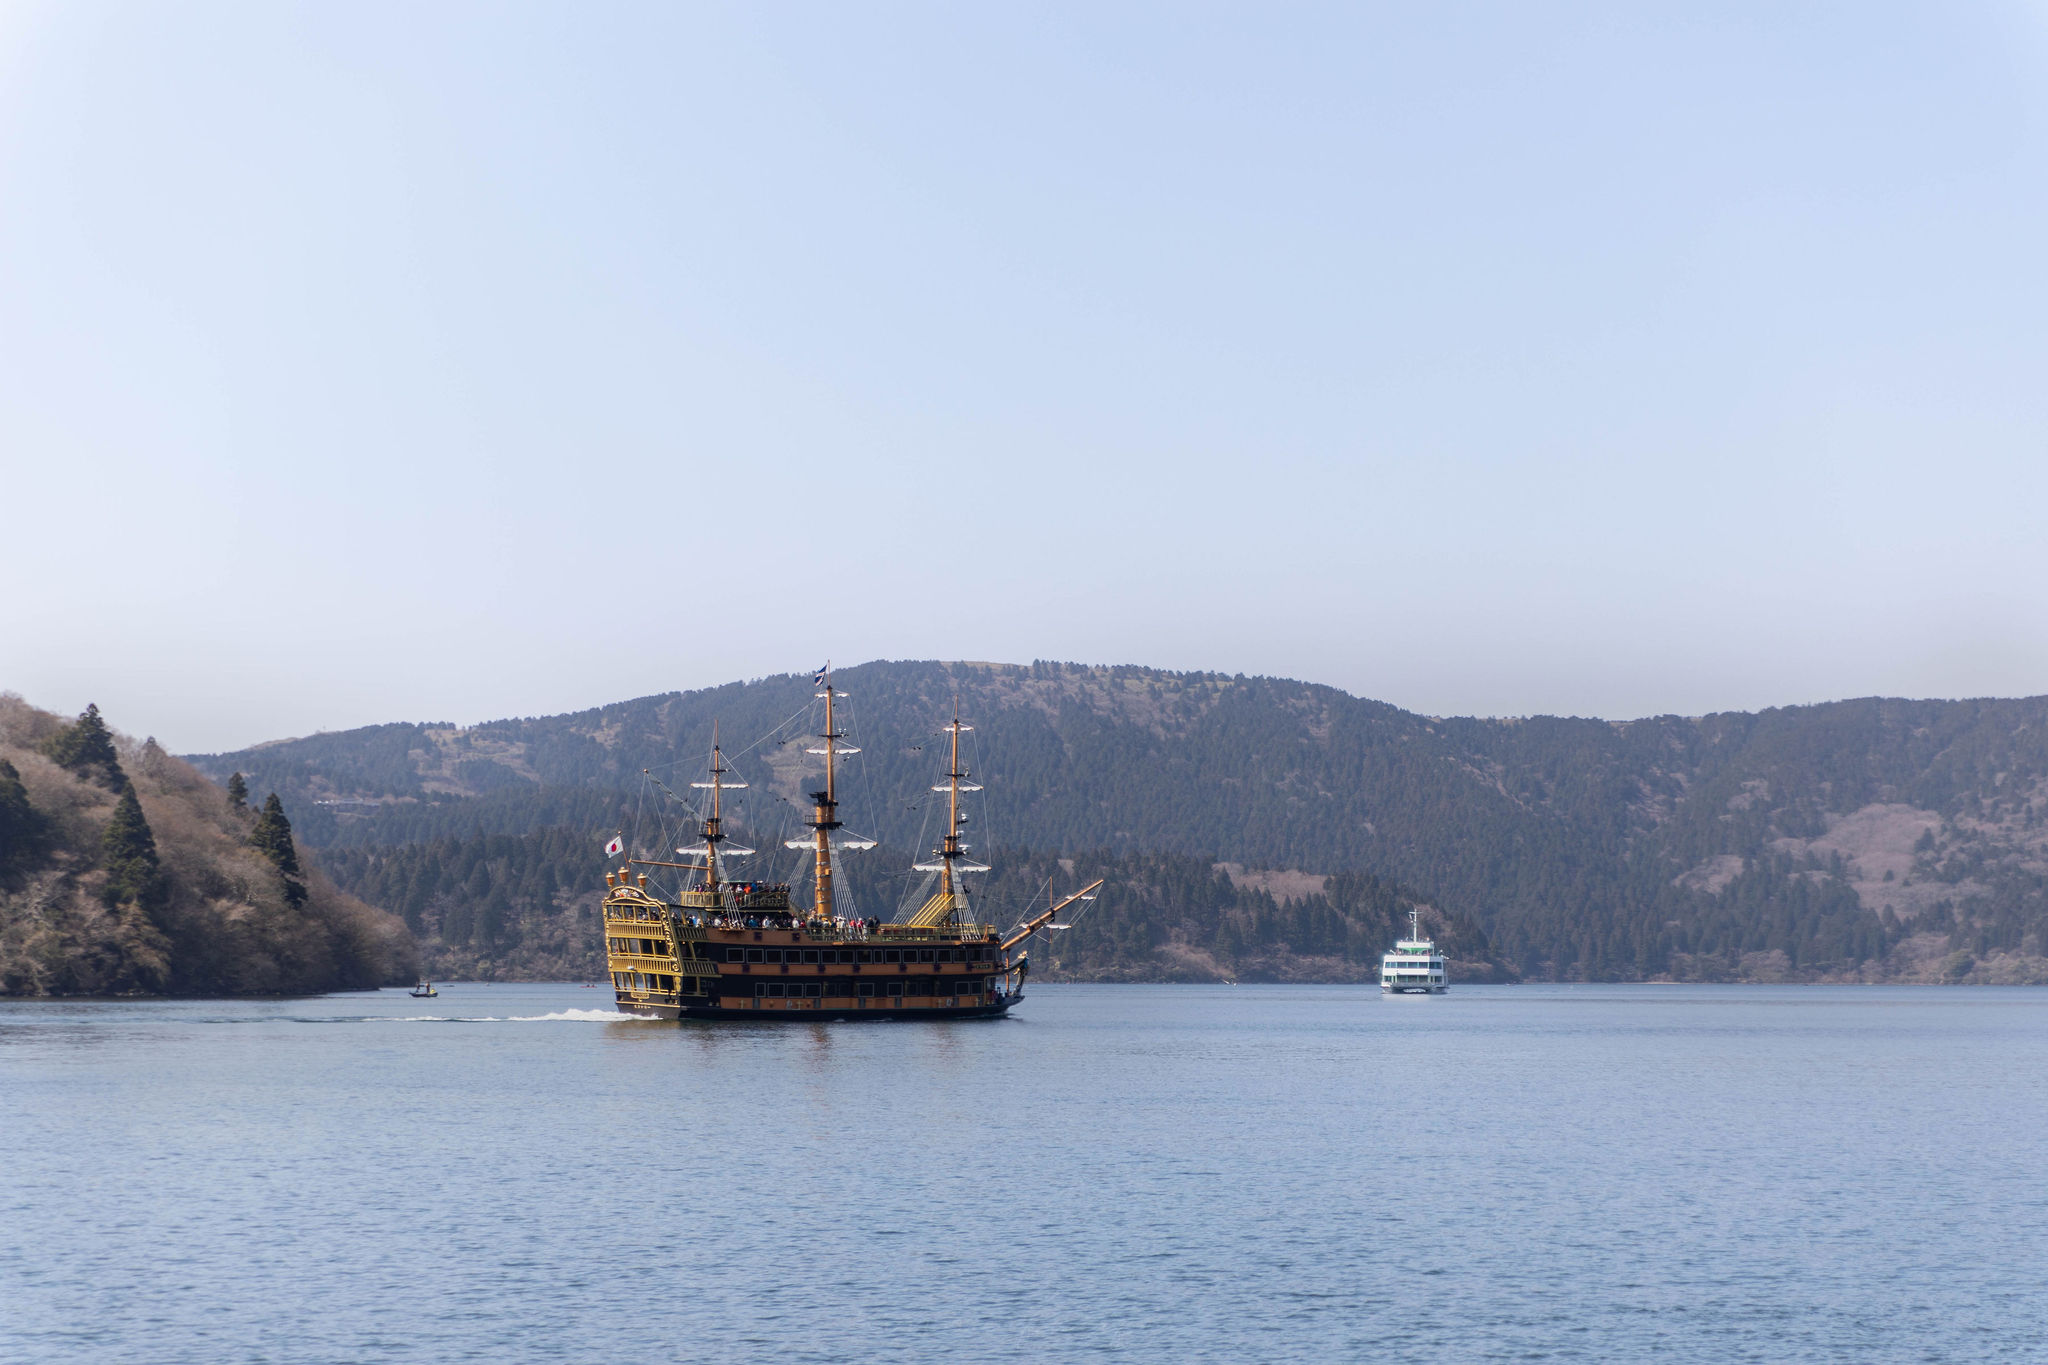 Hakone Japan Pirate Ship Ride Around Lake Ashi